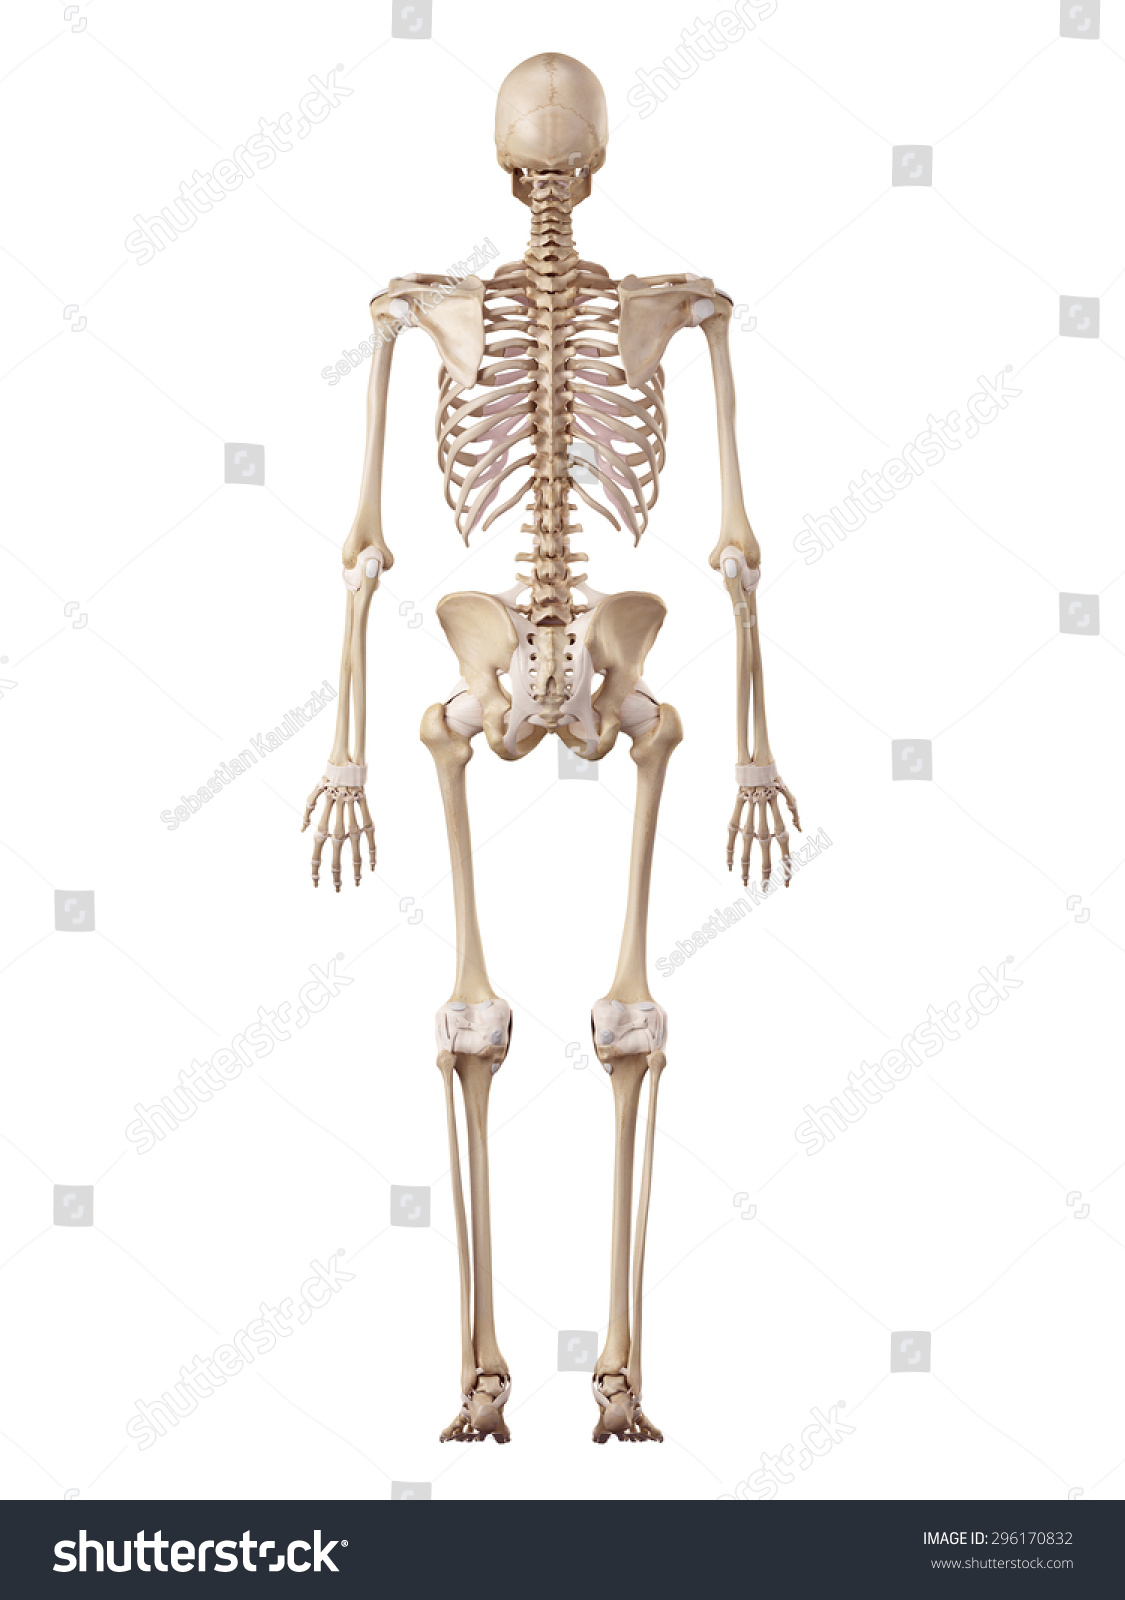 Medical Accurate Illustration Of The Human Skeleton Ez Canvas